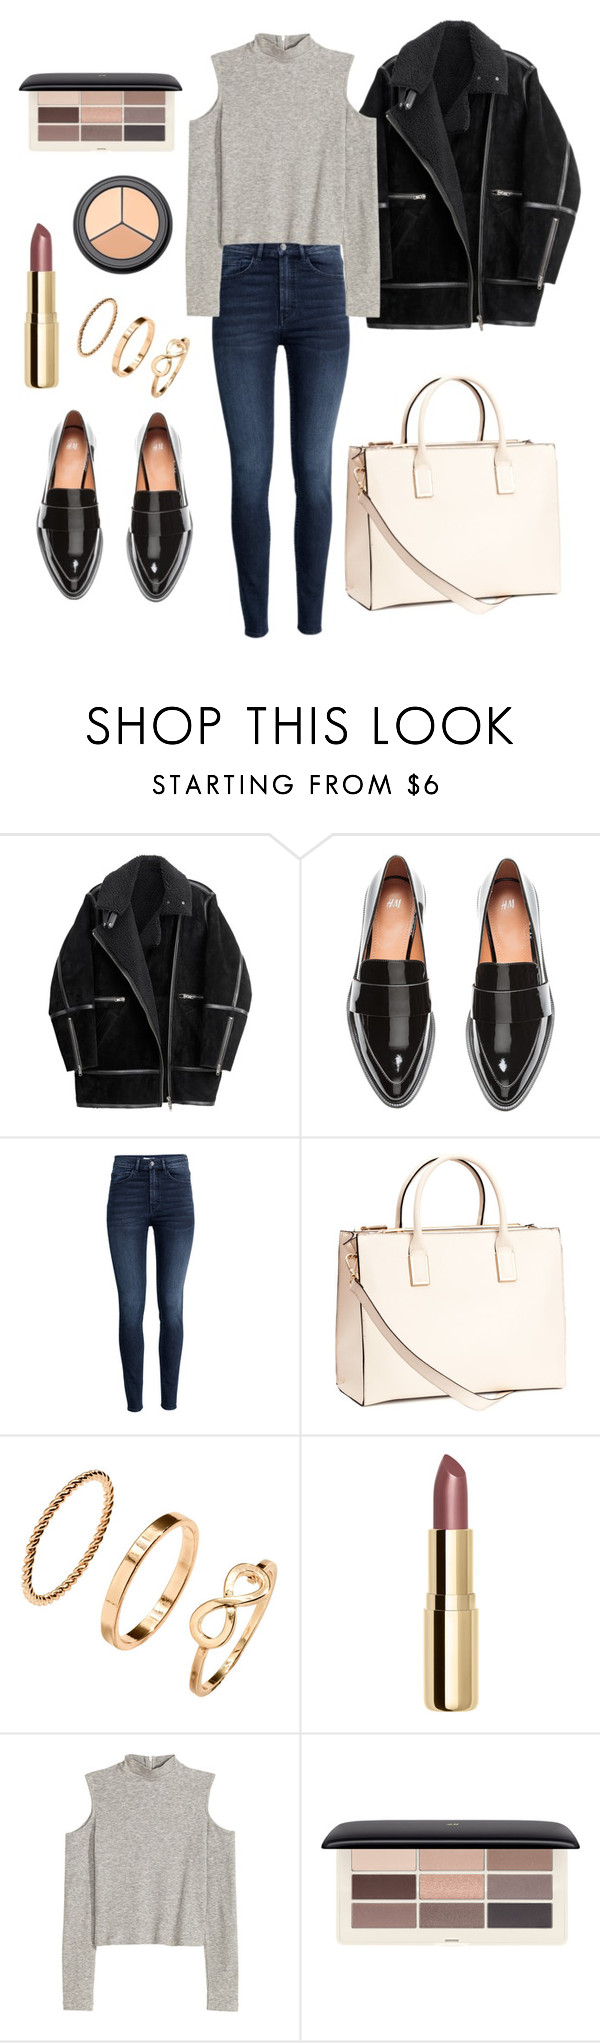 """ONE BRAND: H&M"" by darnelll ❤ liked on Polyvore featuring H&M"